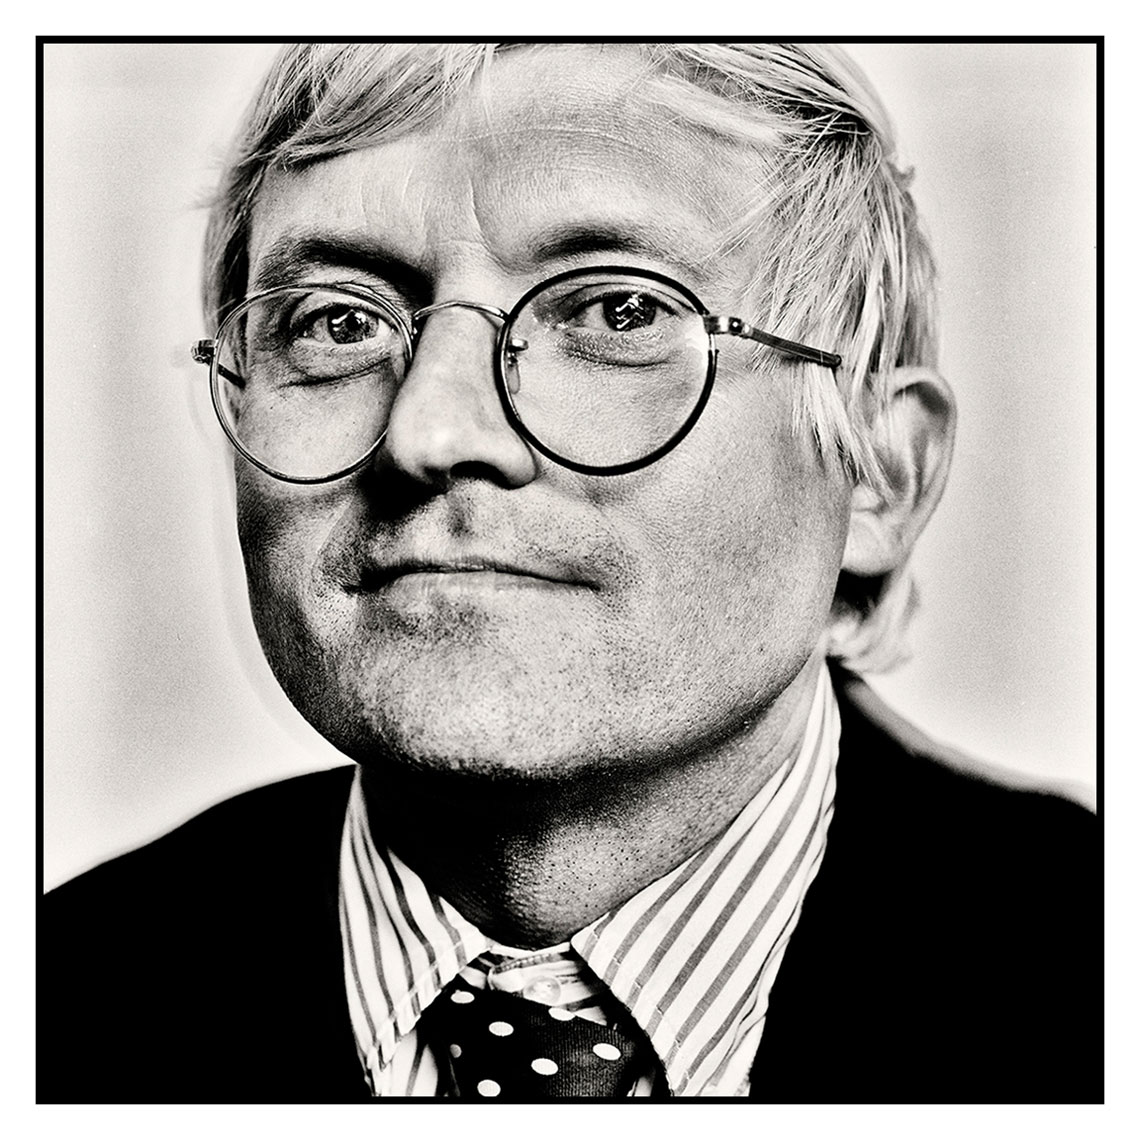 david-hockney-002-1983mf